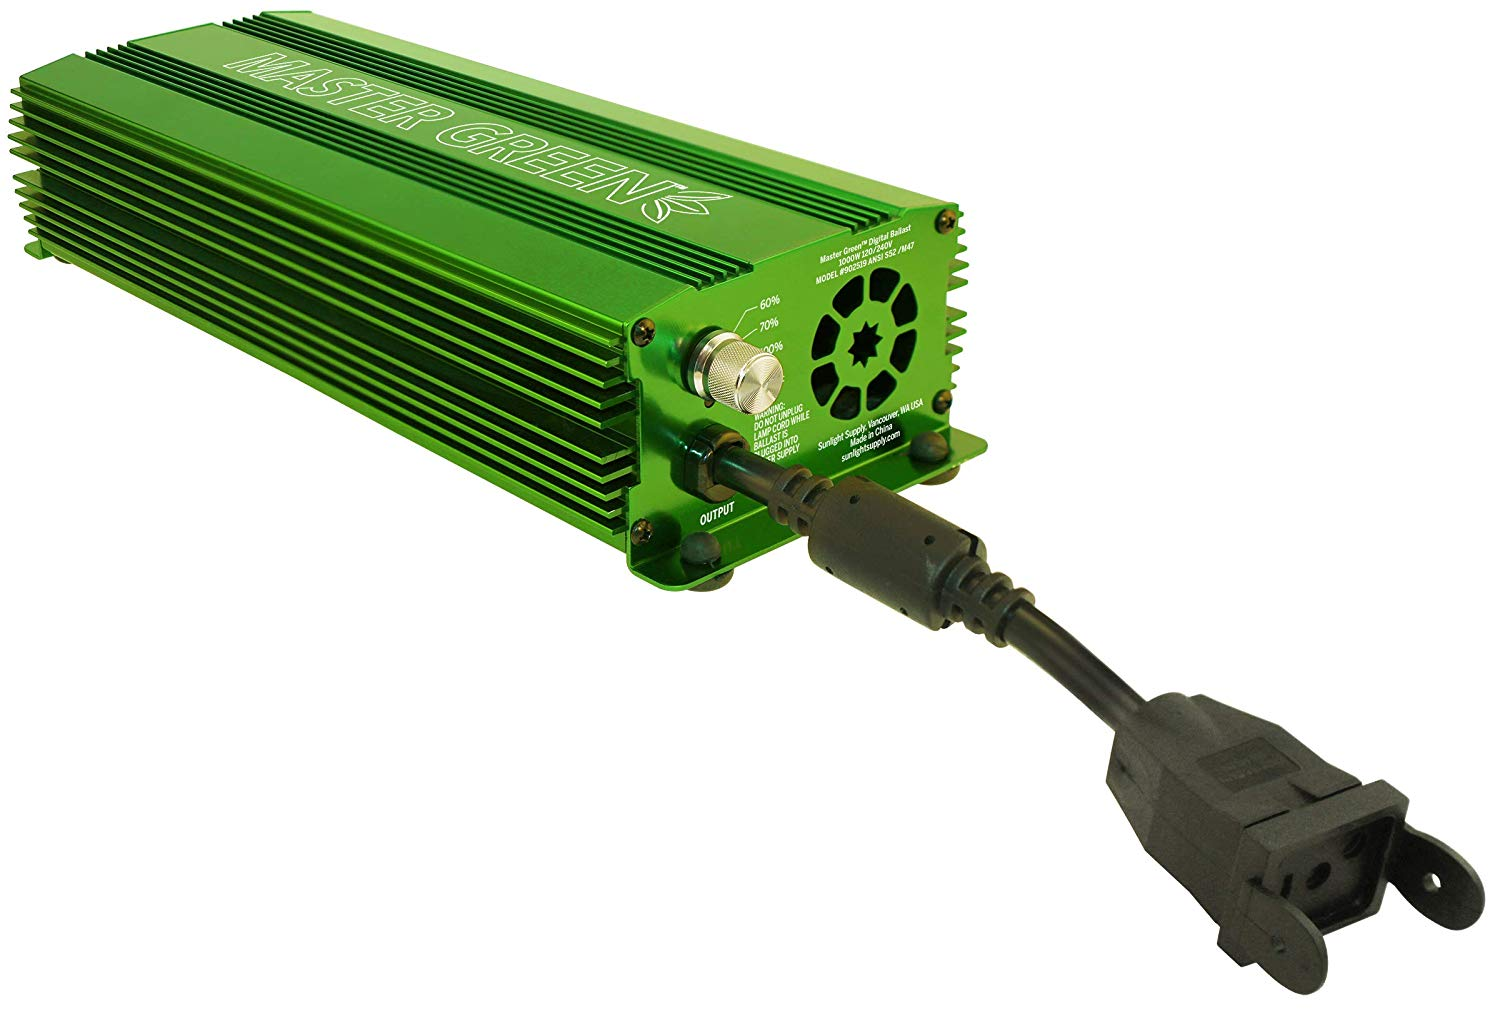 hight resolution of master green 1000 watt electronic ballast 120 240 volt master green 1000 watt electronic